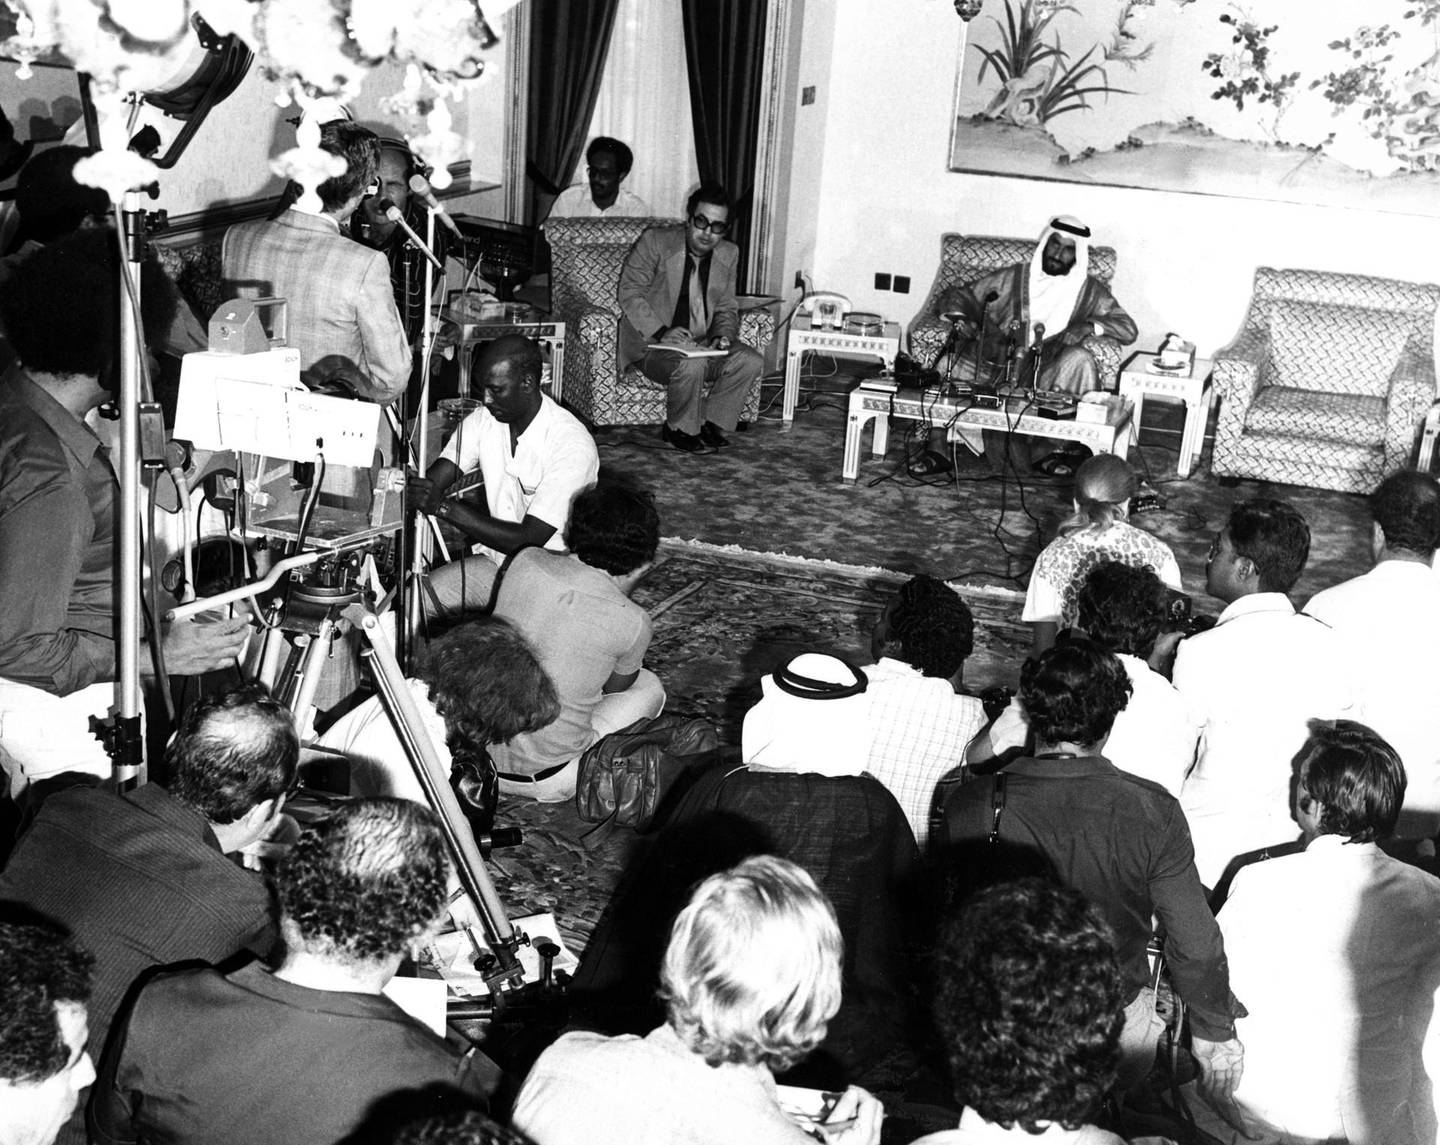 Sheikh Zayed Bin Sultan Al Nahyan at a press conference following the first GCC Summit in Abu Dhabi, 1981  National Archives images supplied by the Ministry of Presidential Affairs to mark the 50th anniverary of Sheikh Zayed Bin Sultan Al Nahyan becaming the Ruler of Abu Dhabi. *** Local Caption ***  60.jpg